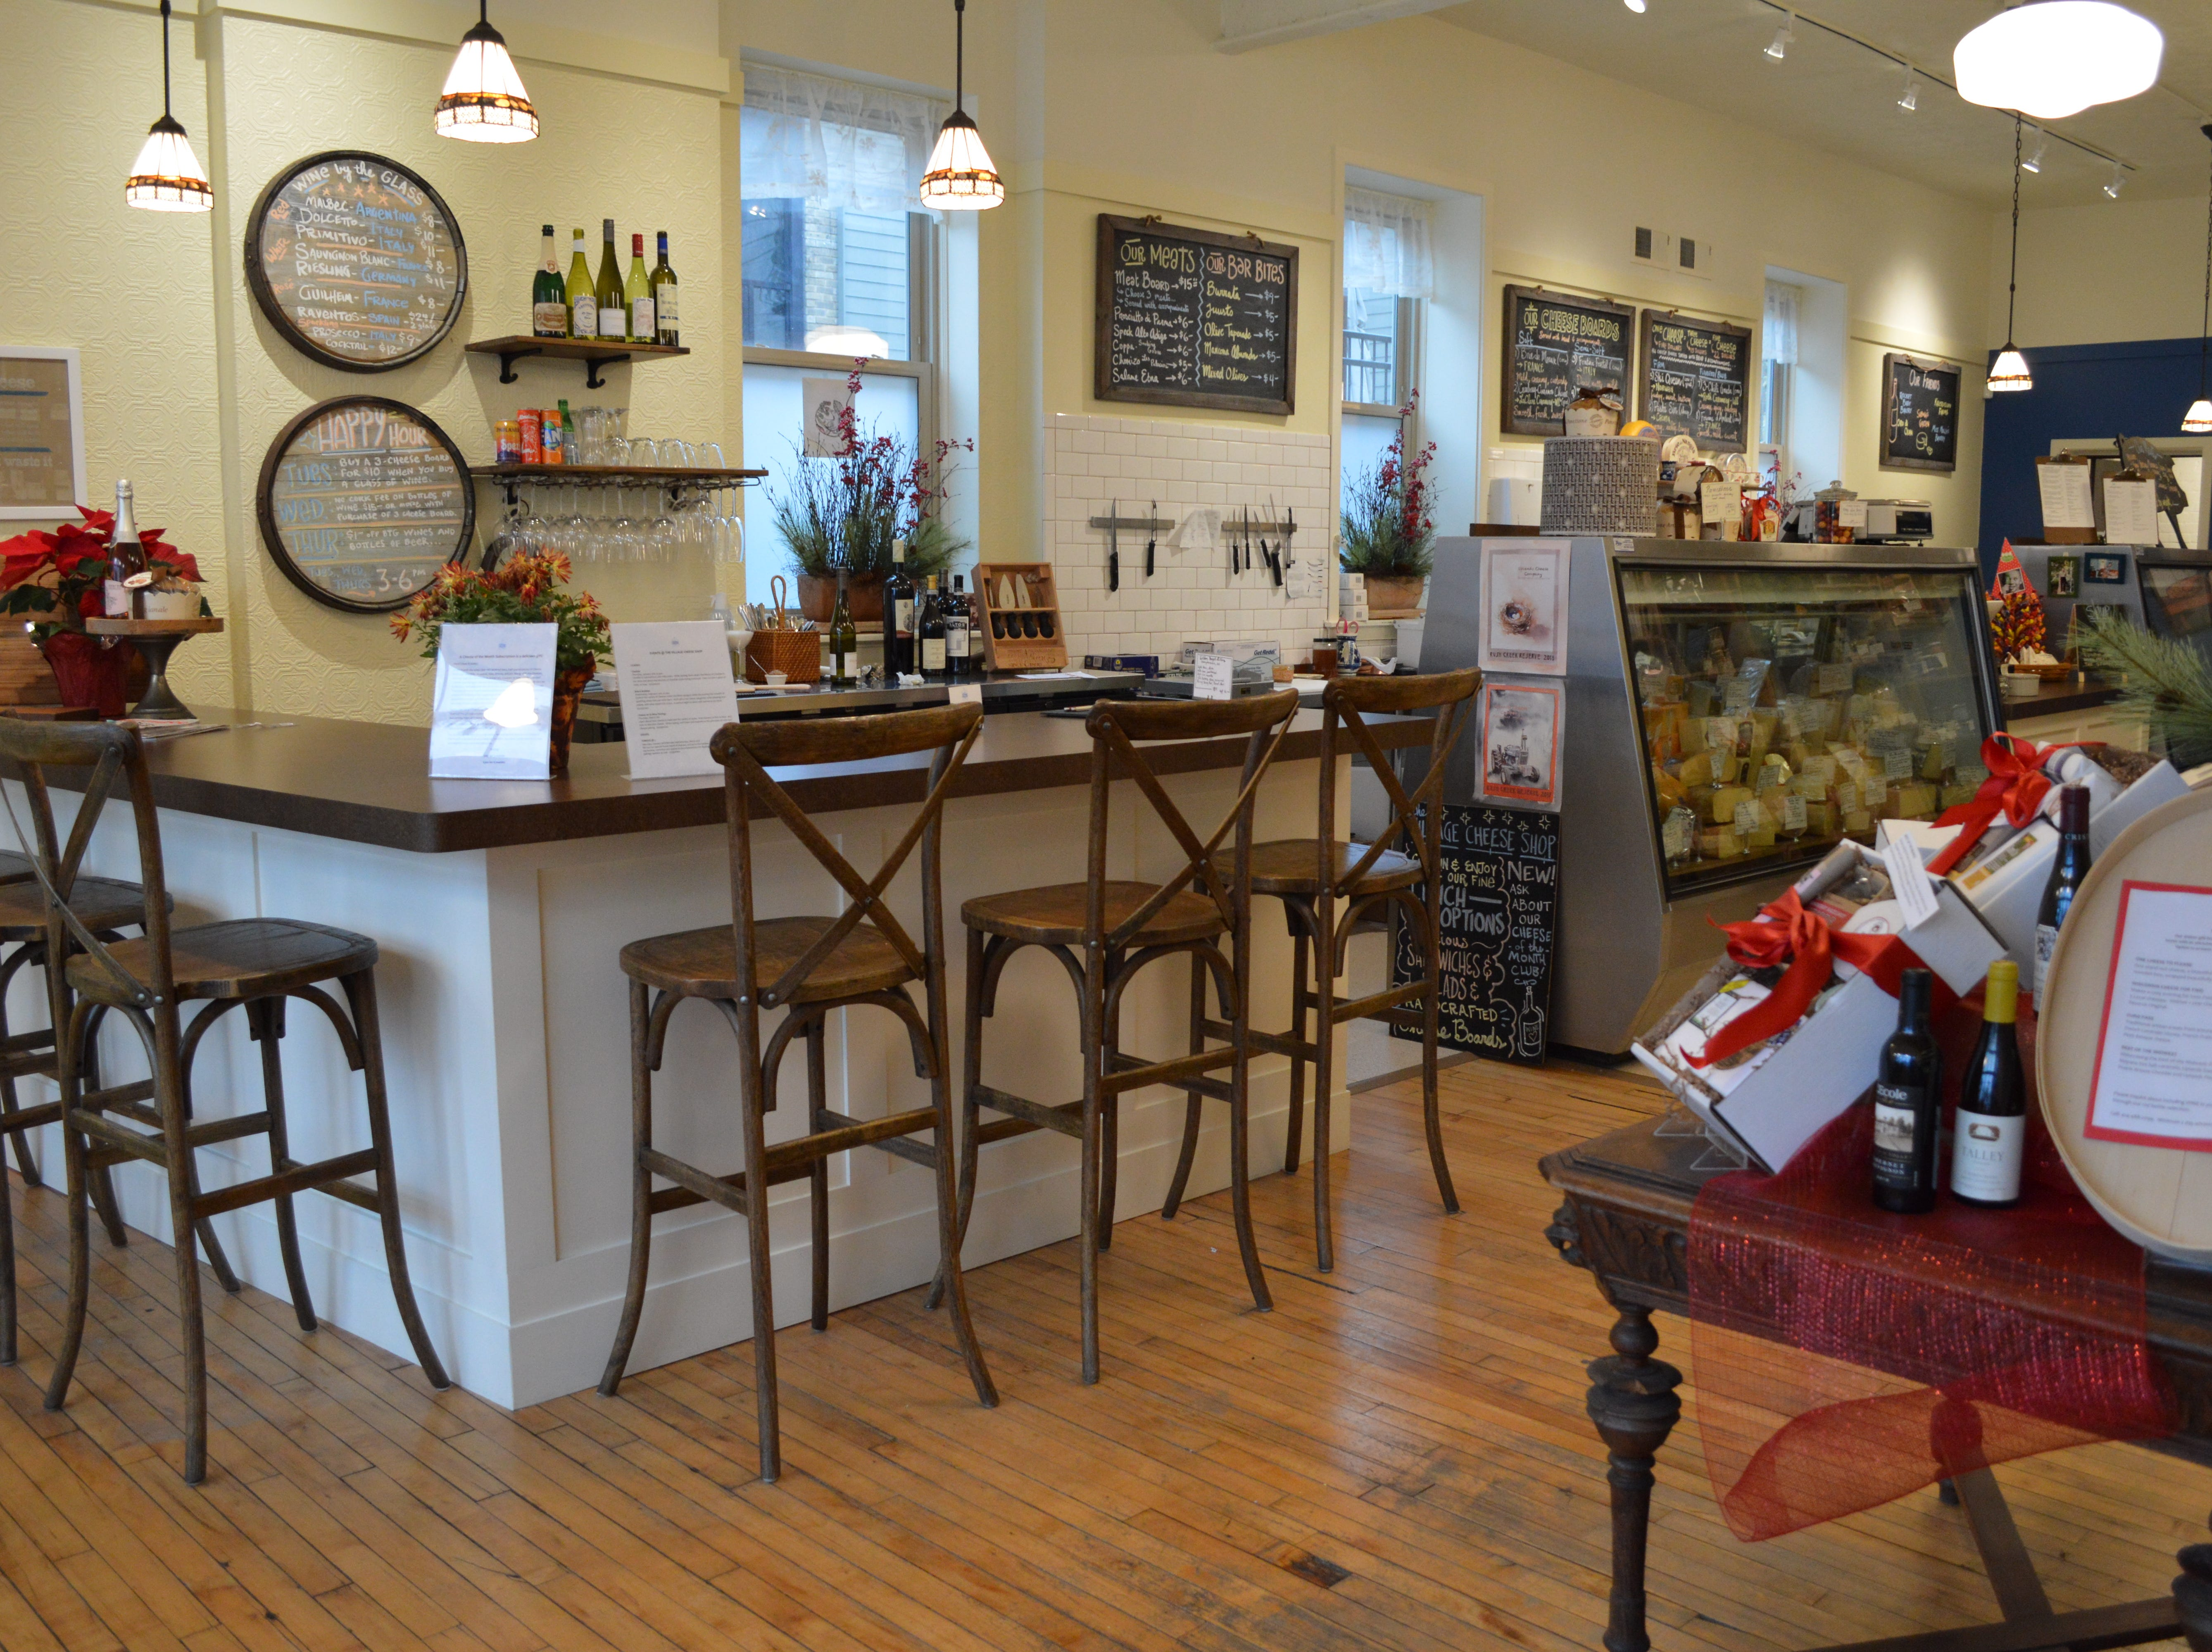 The Village Cheese Shop is located at 1430 Underwood Ave., Wauwatosa.